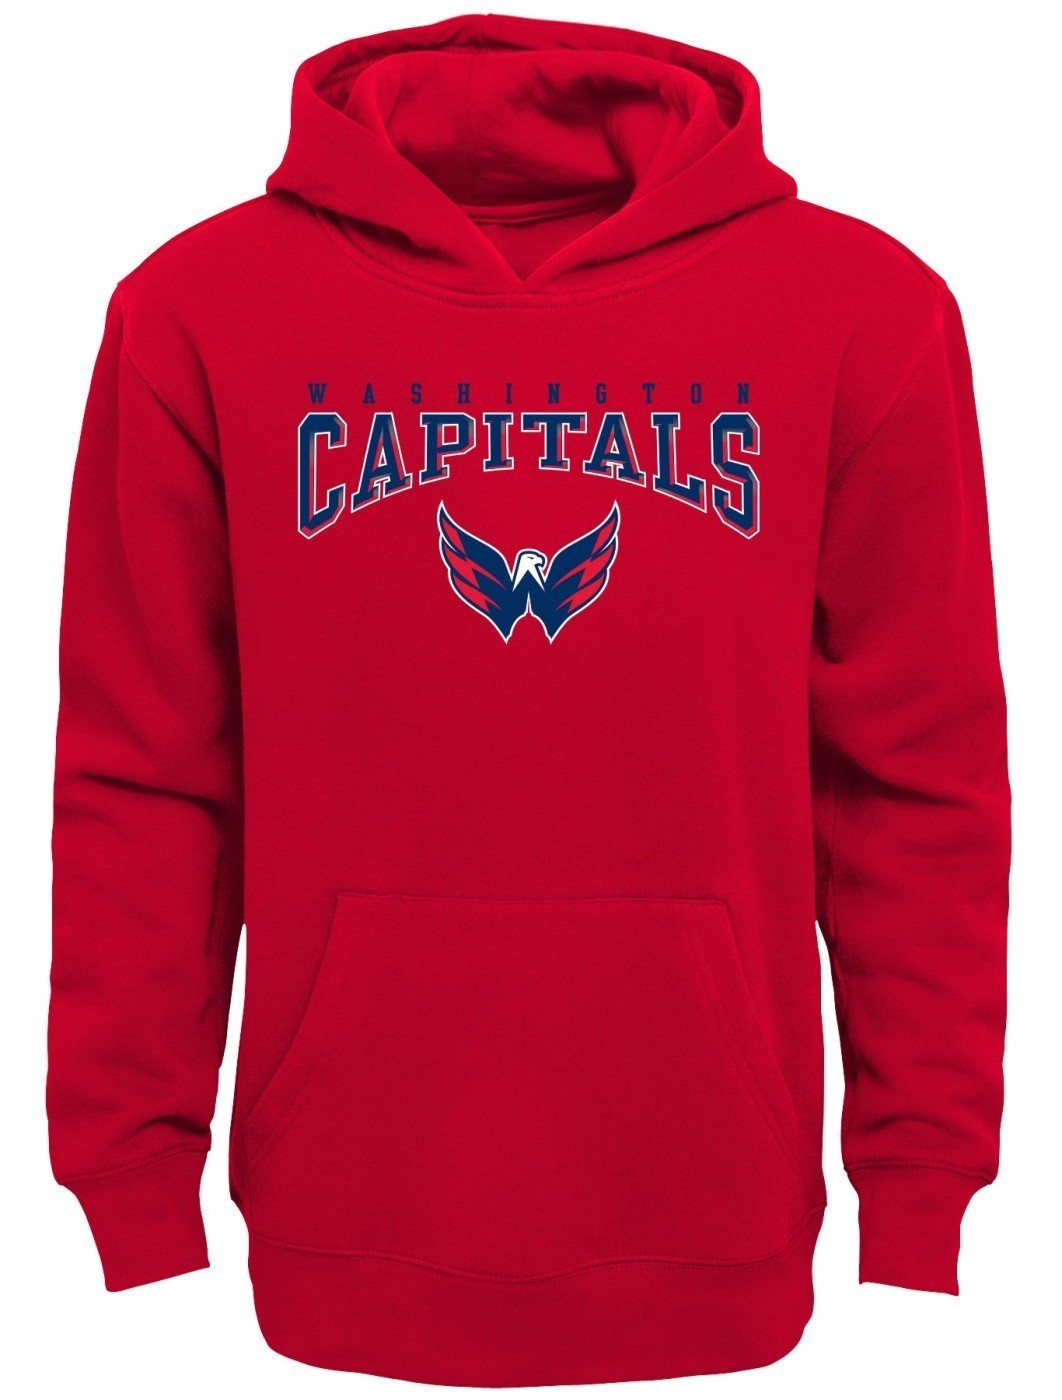 8b1a9f5d4 Details about Washington Capitals Youth NHL